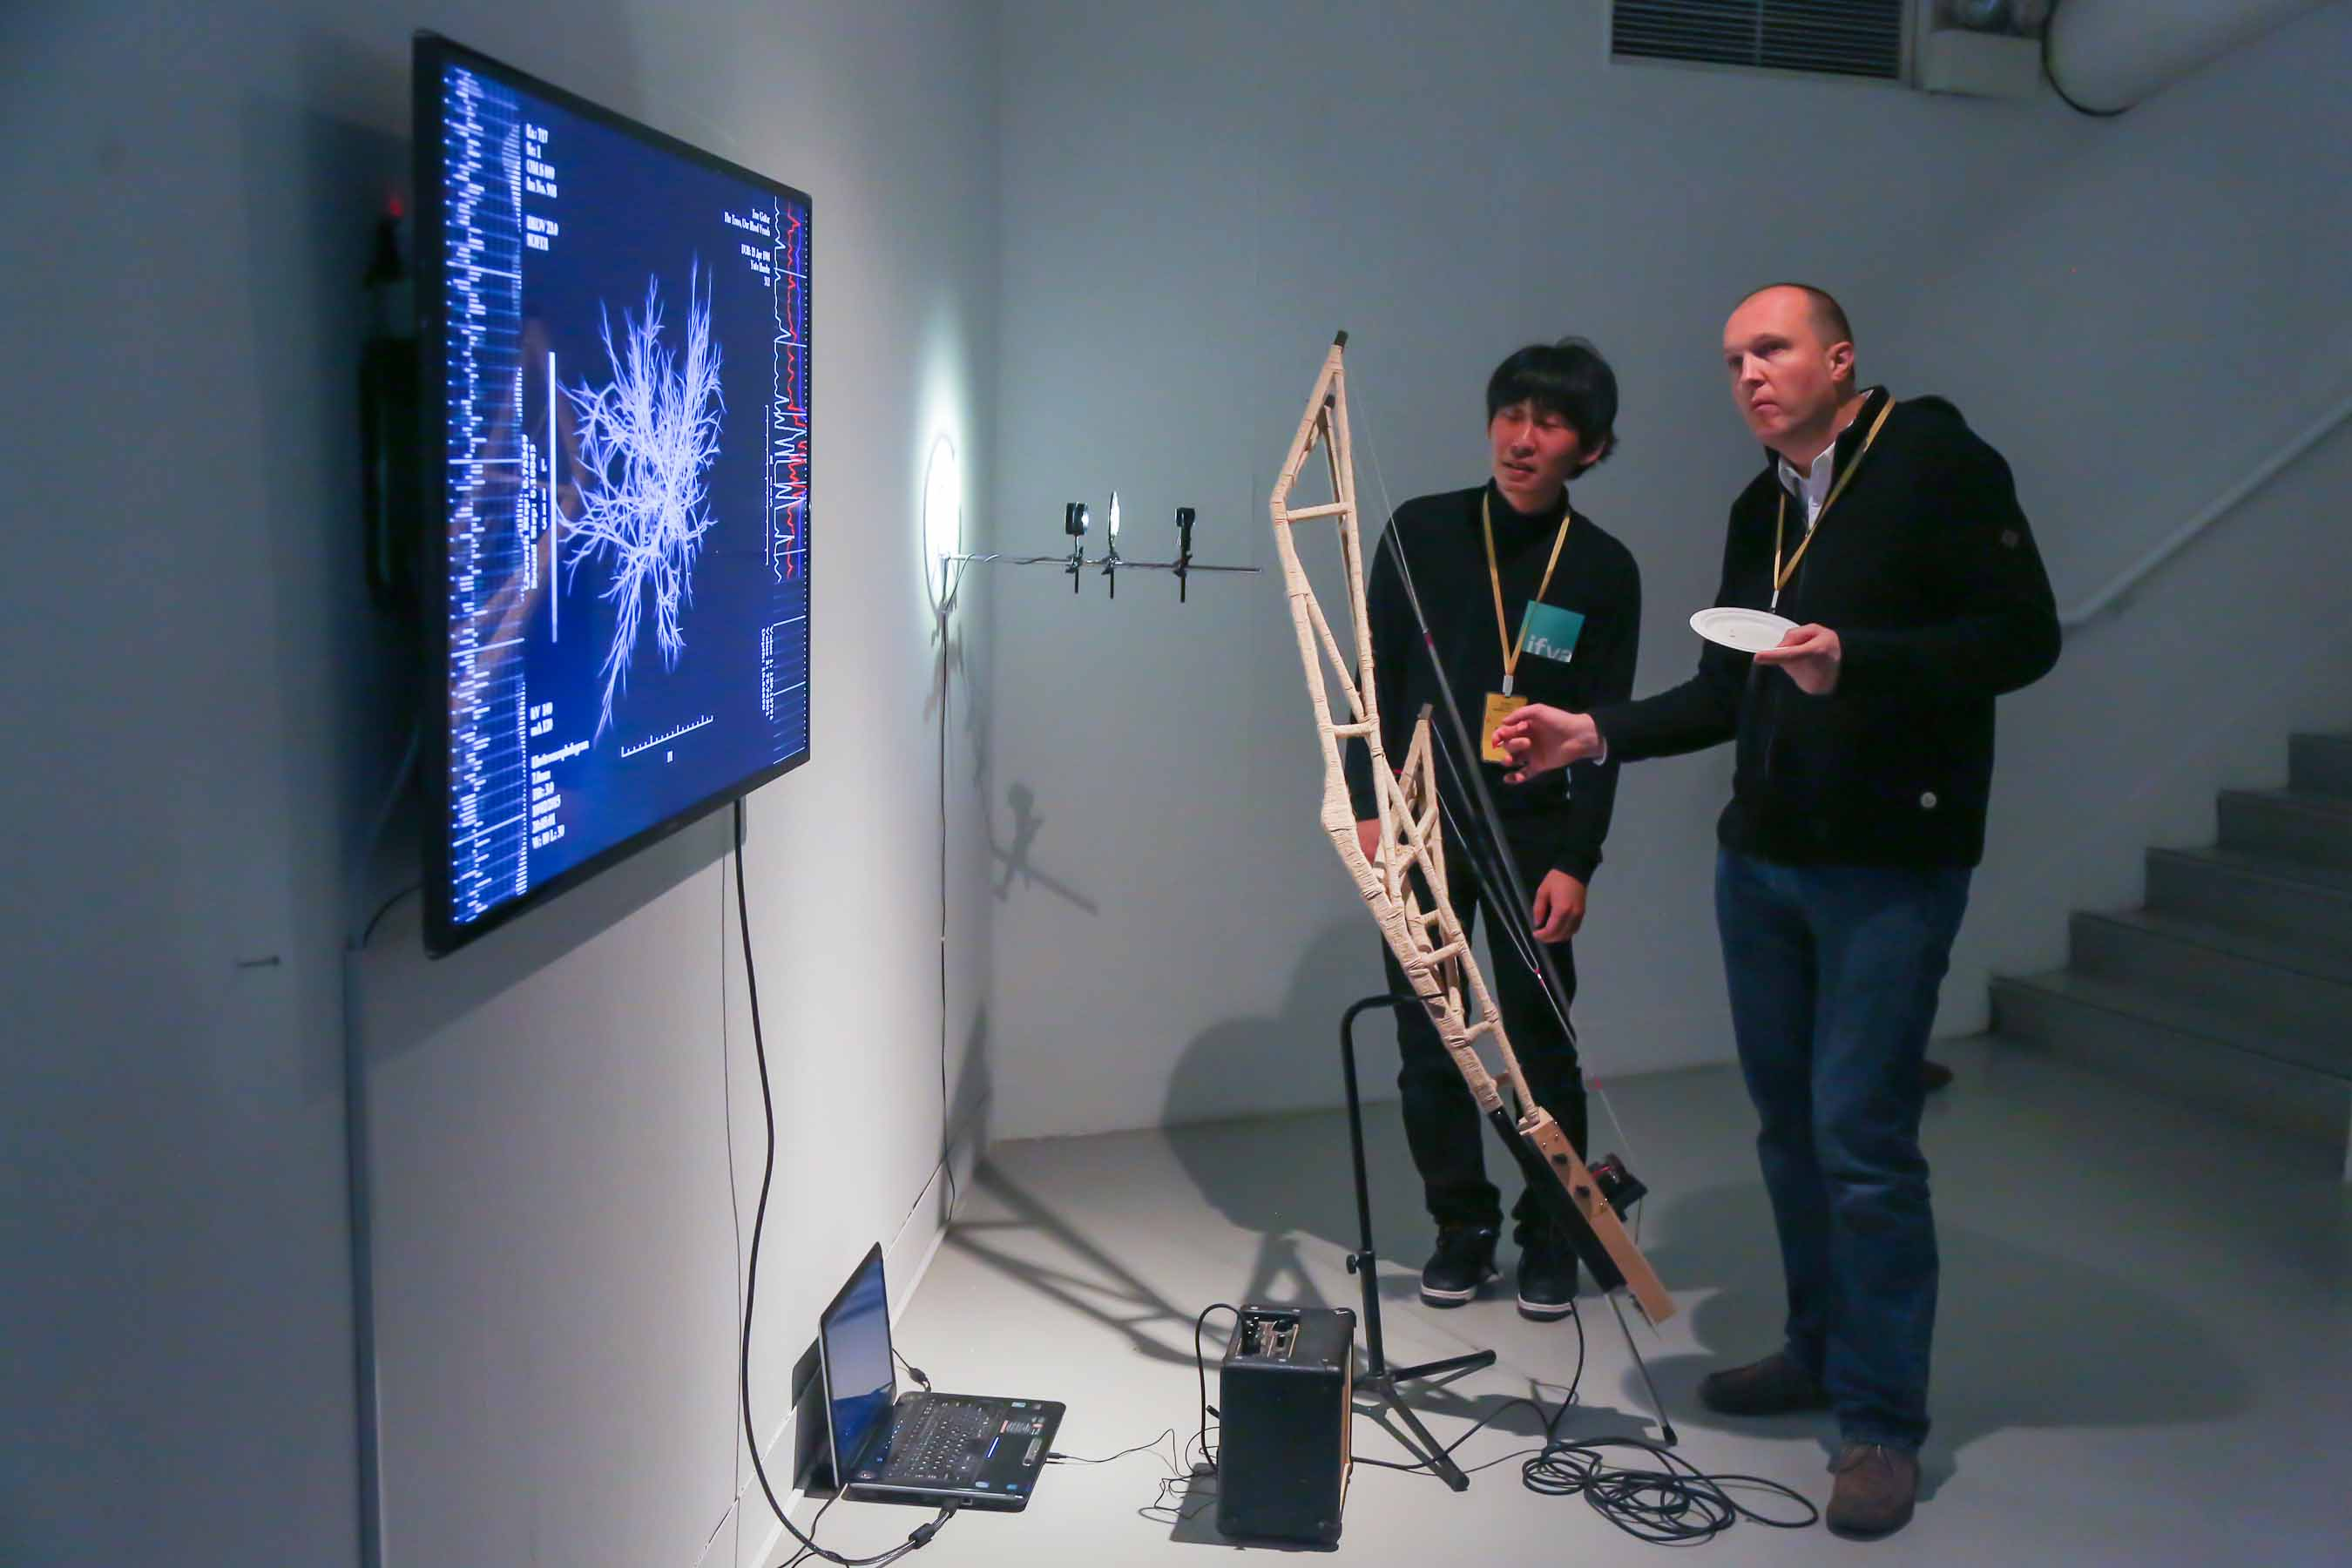 Yuto Hasebe was explaining his finalist work <i>Tree Guitar: The Trees, Our Blood Vessels</i> to Gebhard Sengmϋller